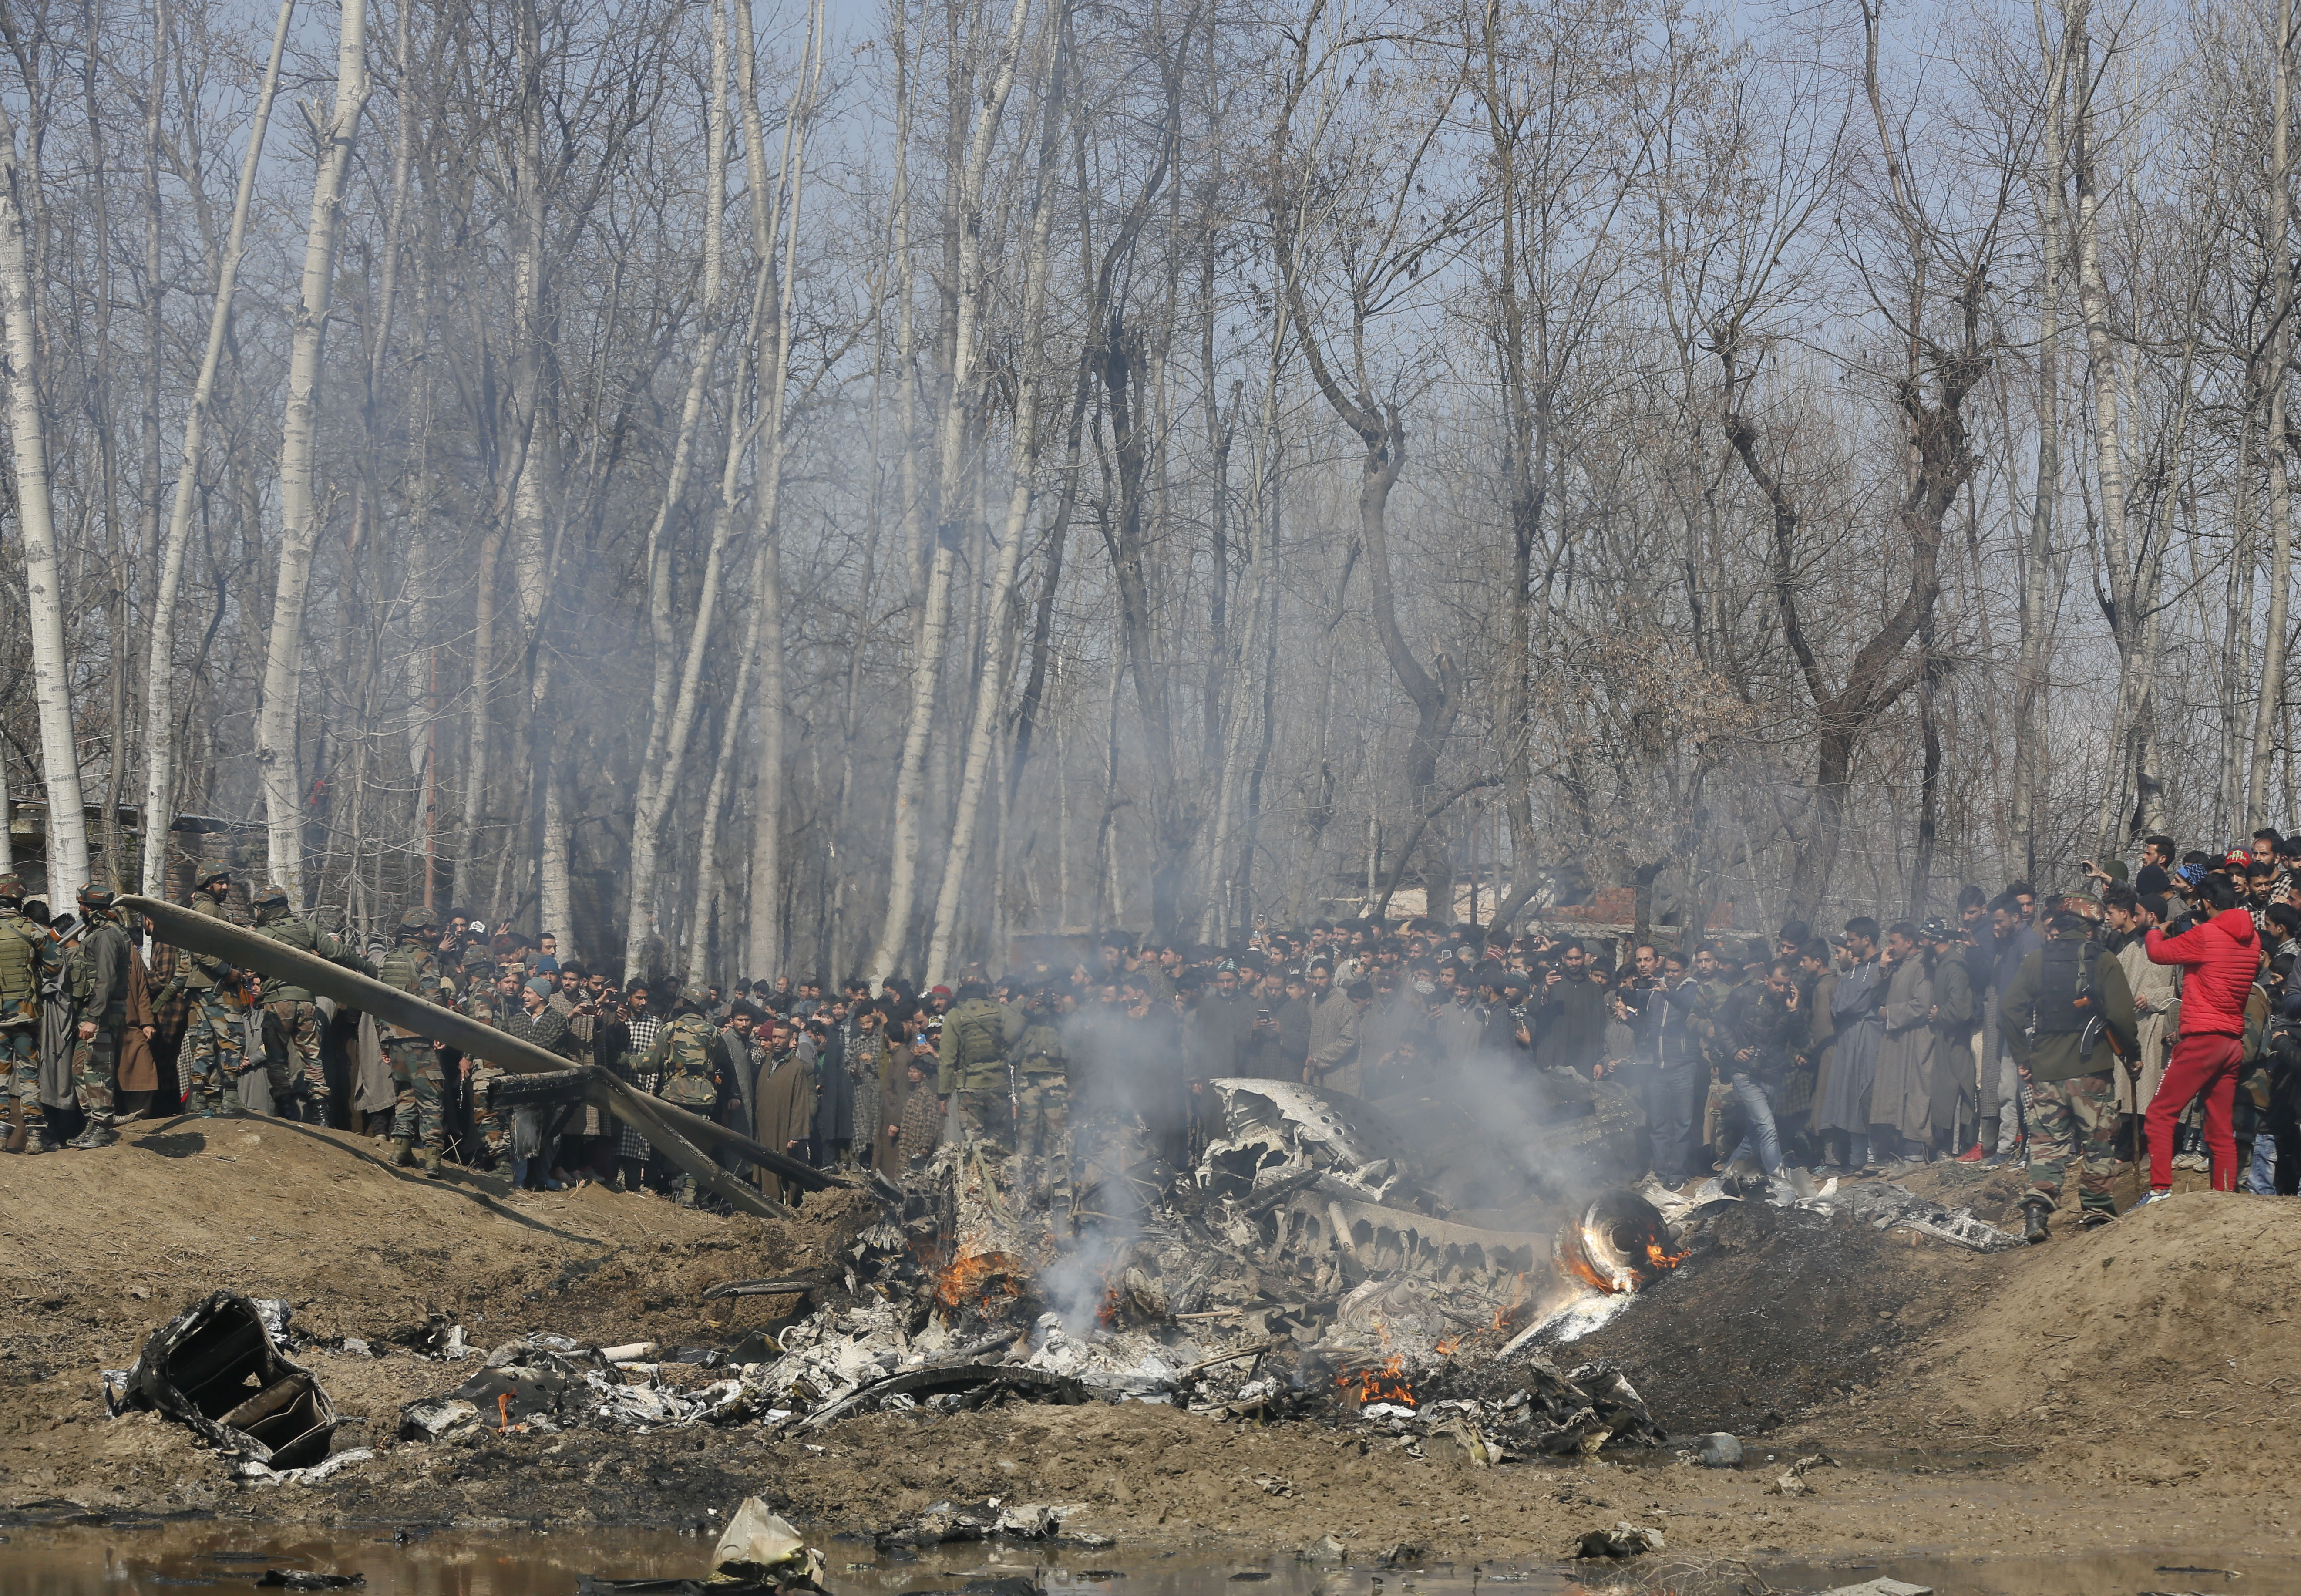 Kashmiri villagers gather near the wreckage of an Indian aircraft after it crashed in Budgam area, outskirts of Srinagar, Indian controlled Kashmir, Wednesday, Feb.27, 2019. (AP Photo/Mukhtar Khan)